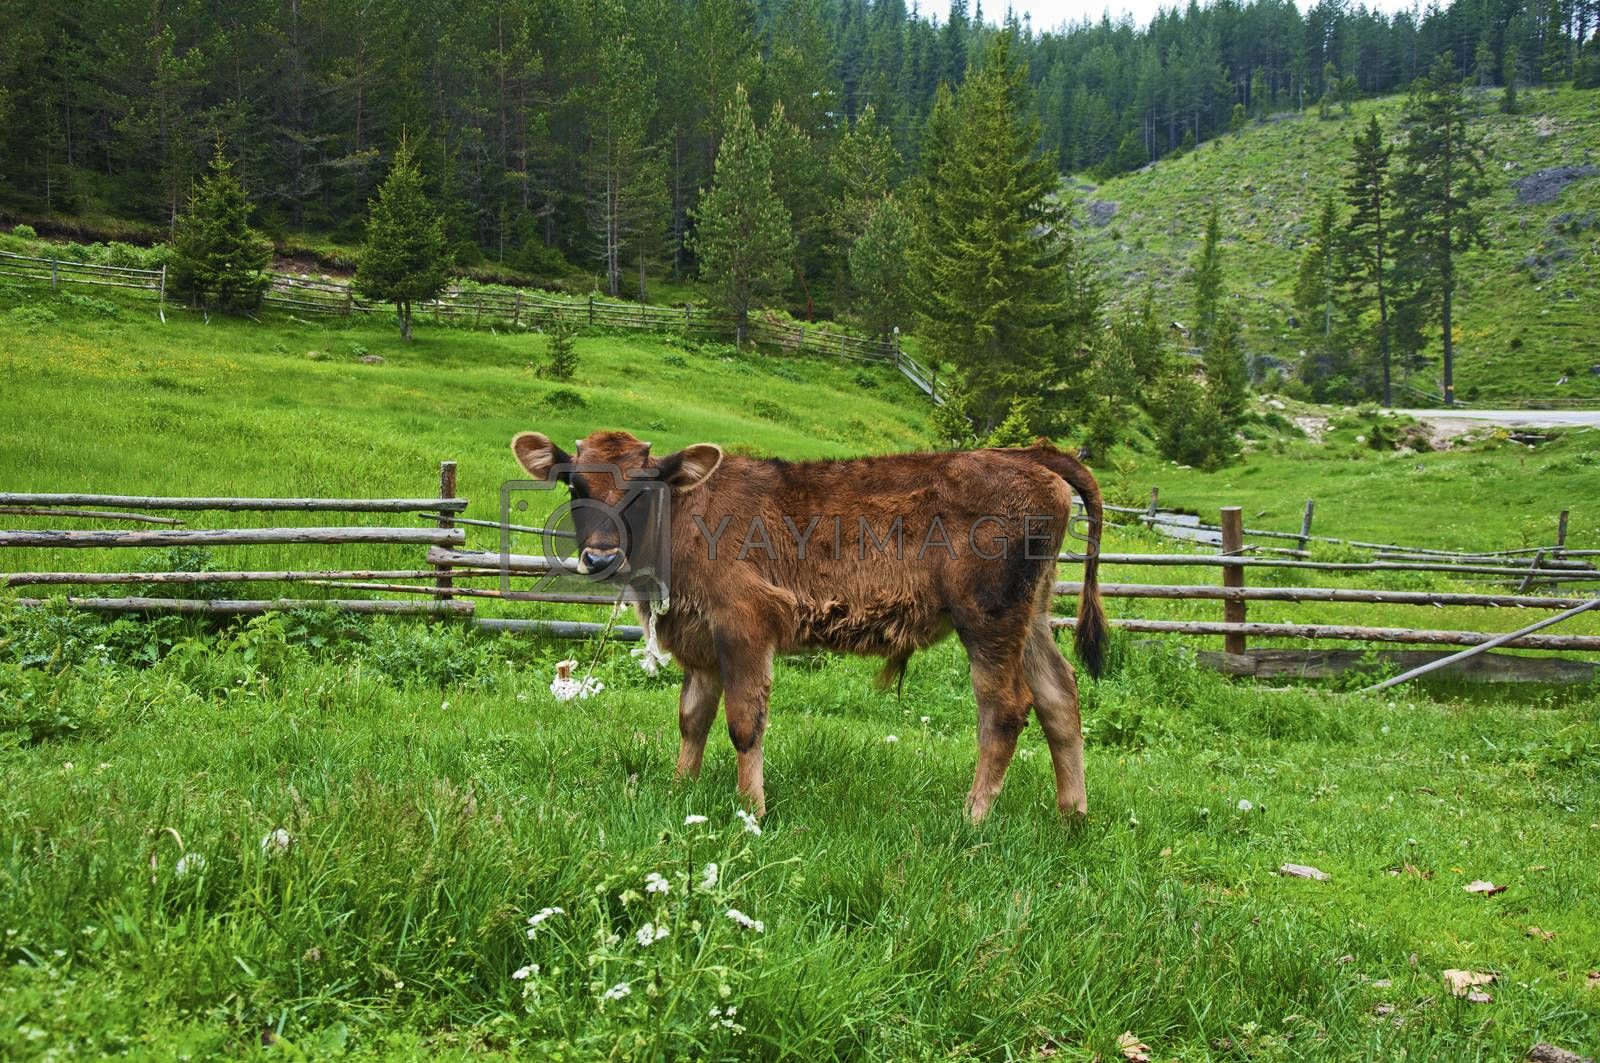 Brown young calf in green mountain meadow